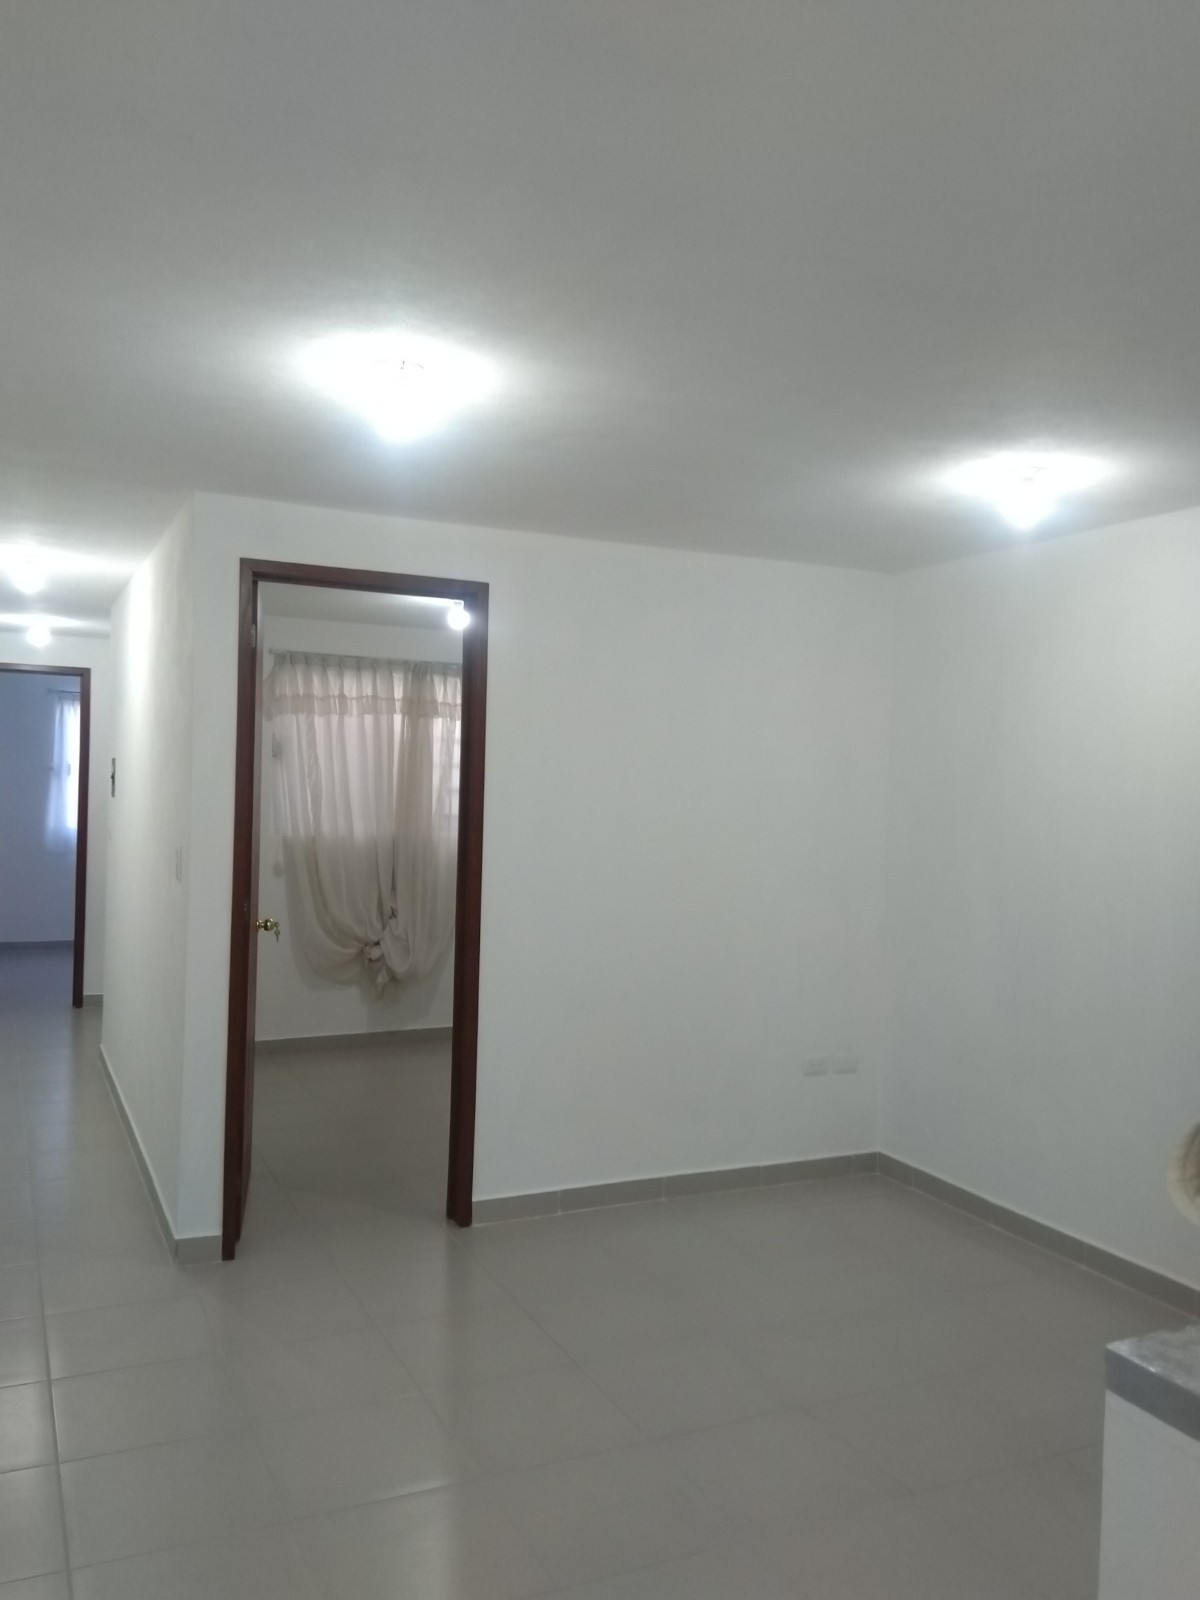 2 Rooms Rooms,Departamentos,Renta,1092